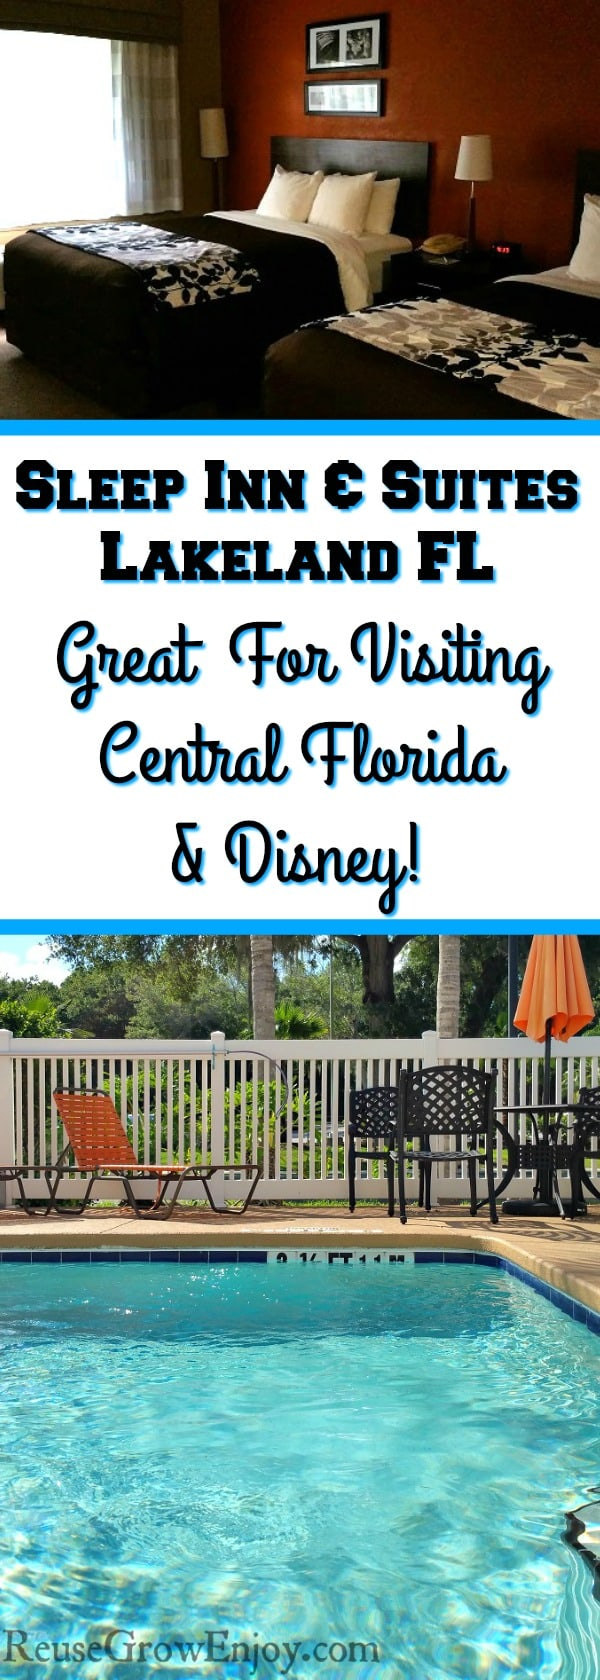 Sleep Inn & Suites Lakeland Florida | Great Place & Price For Visiting Central Florida Attractions Like Disney World!